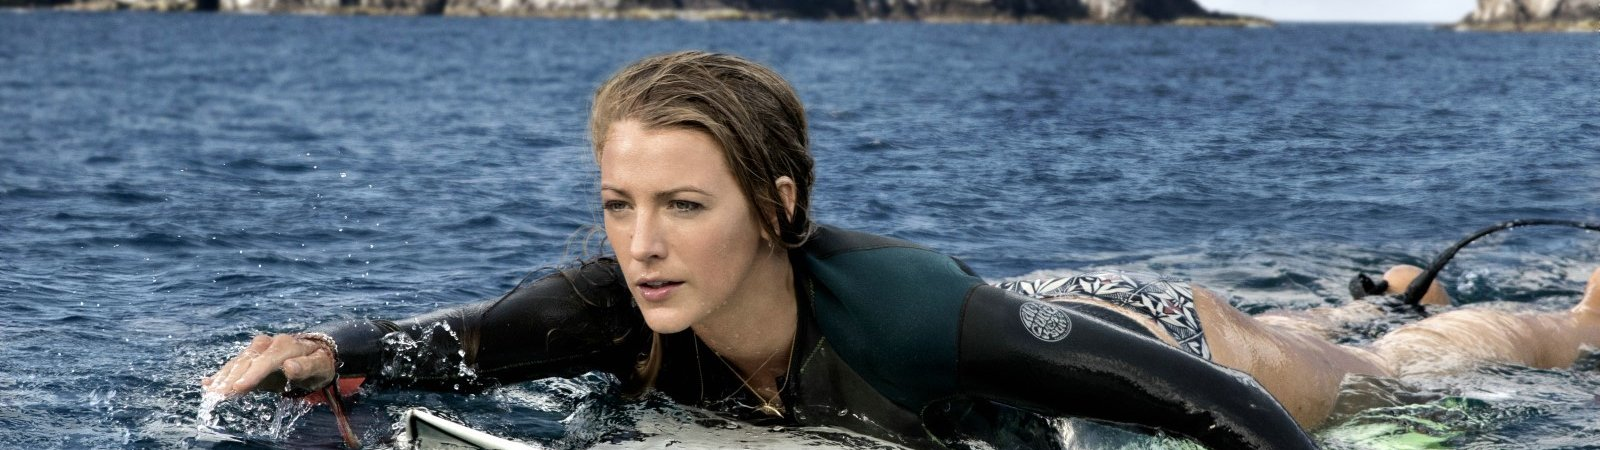 Photo du film : Instinct de survie : The Shallows